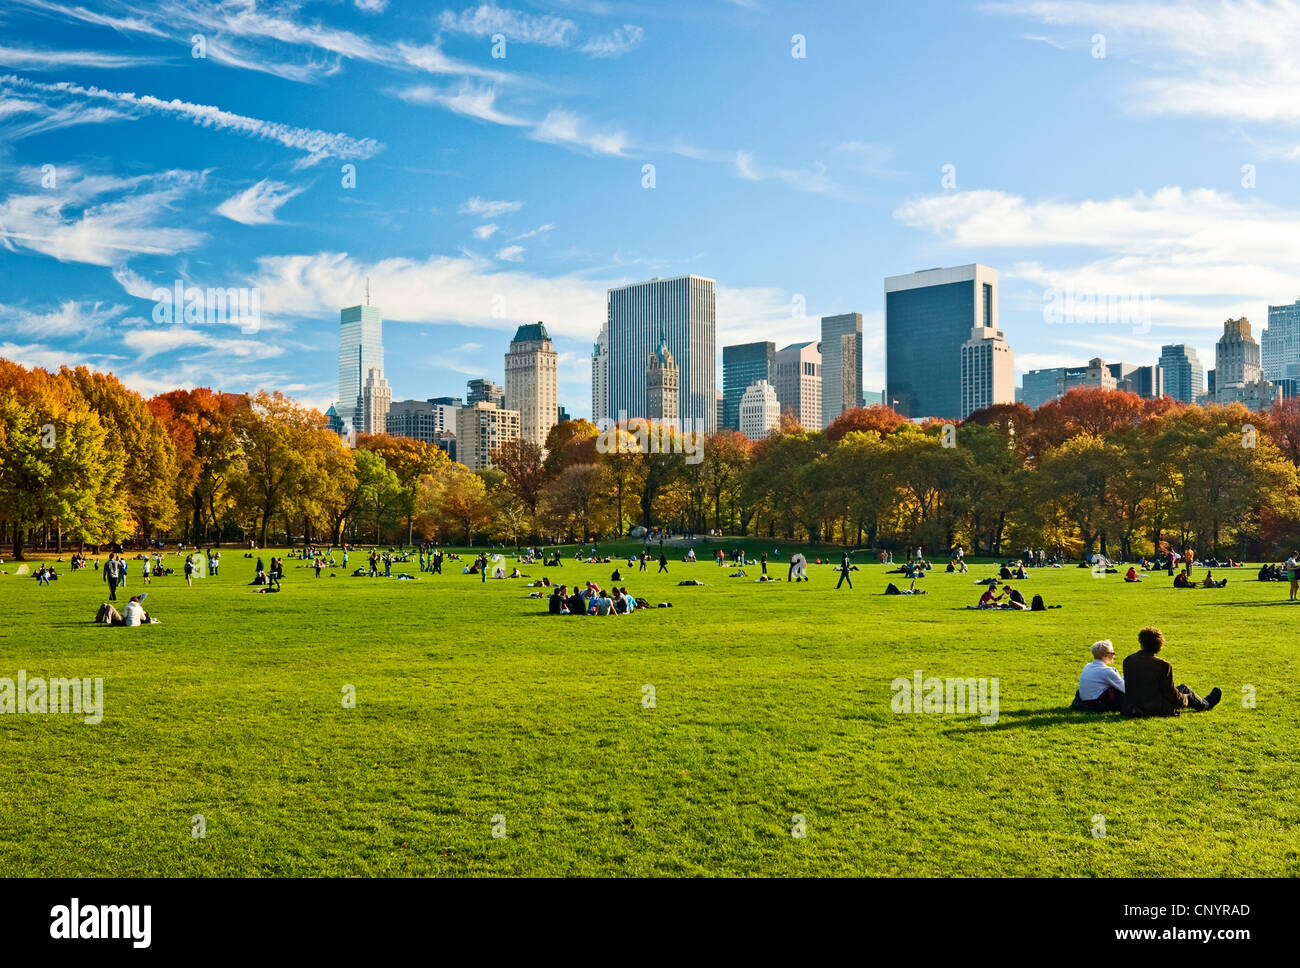 People relaxing in Central Park, New York City, in Autumn, looking towards the Central Park South skyline from Sheep - Stock Image